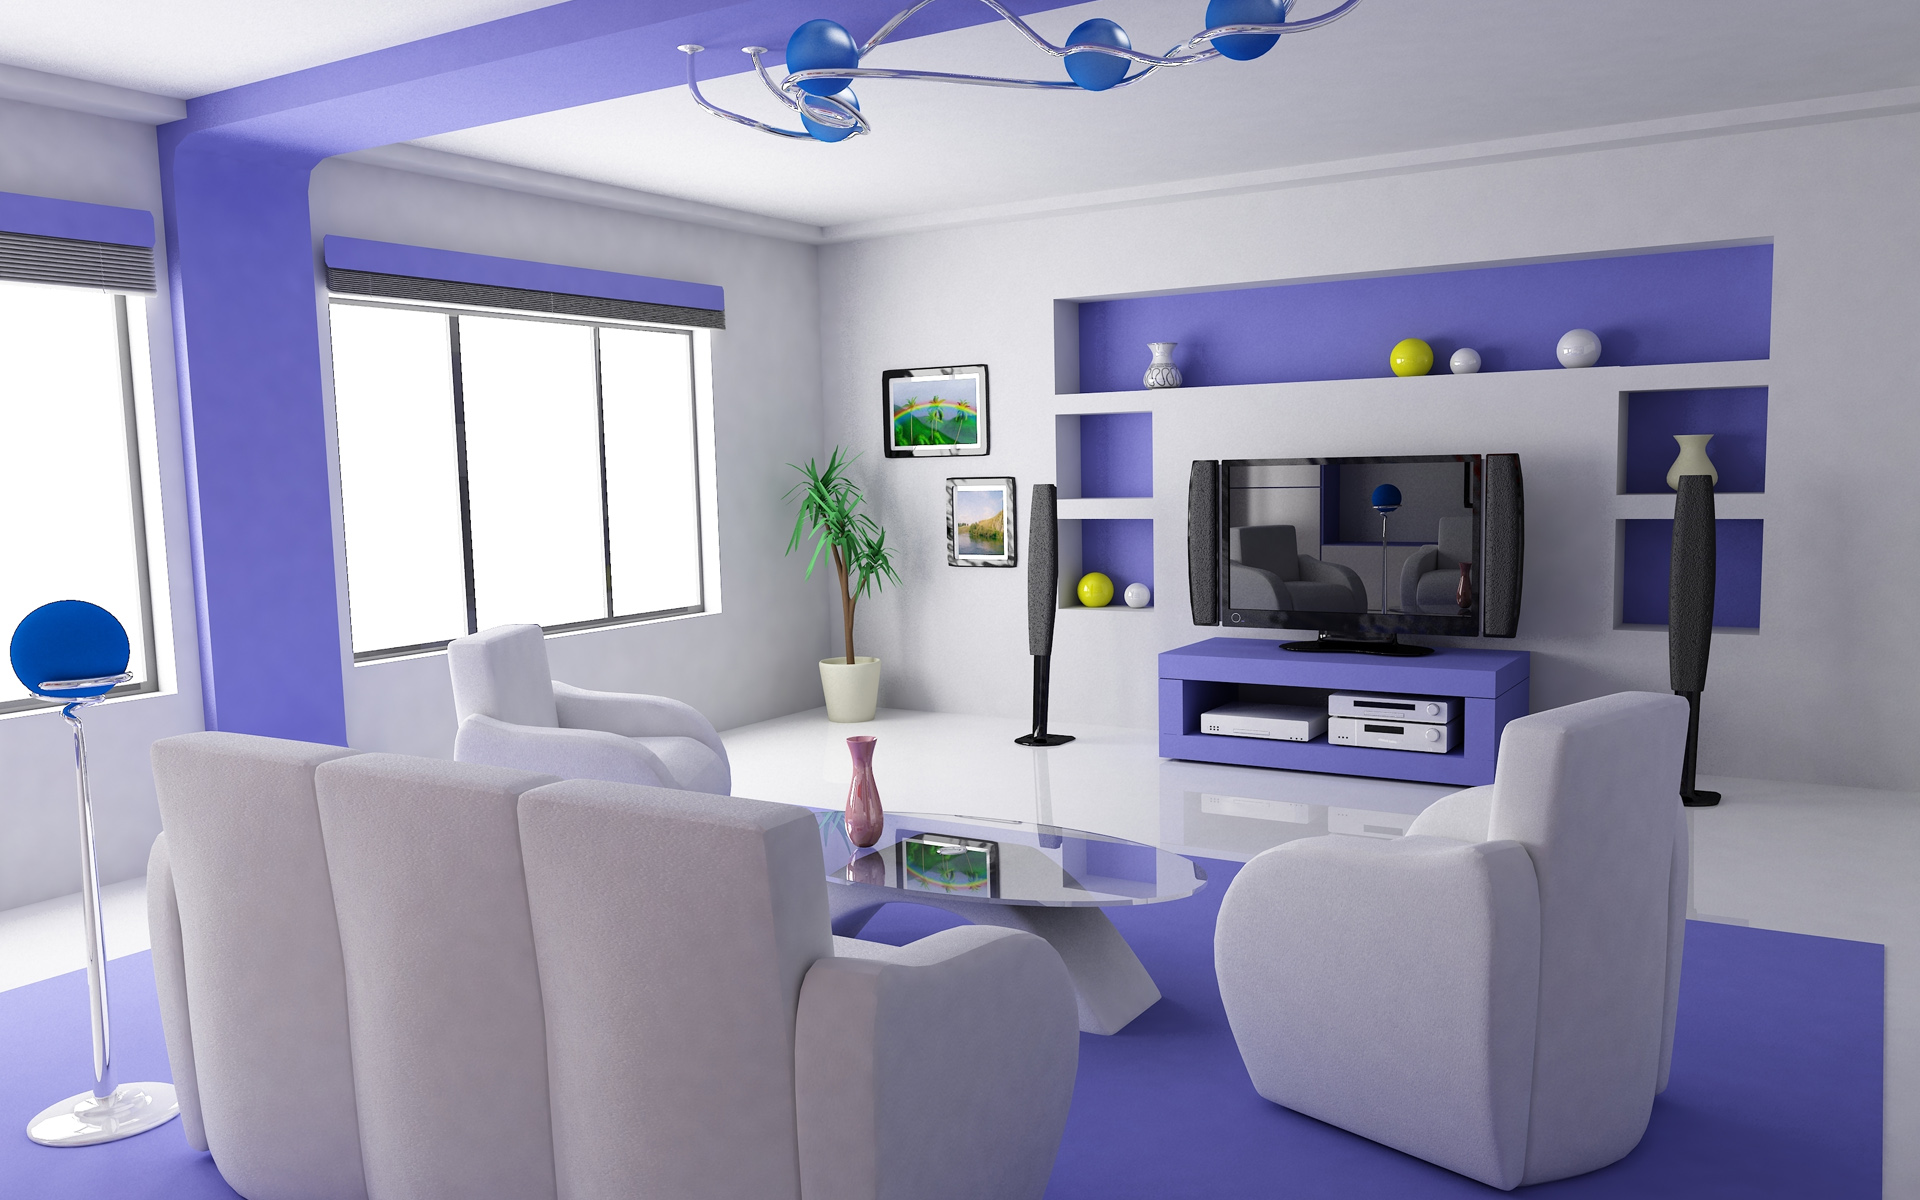 Interior design wallpapers movie hd wallpapers - Wallpapper interior design ...